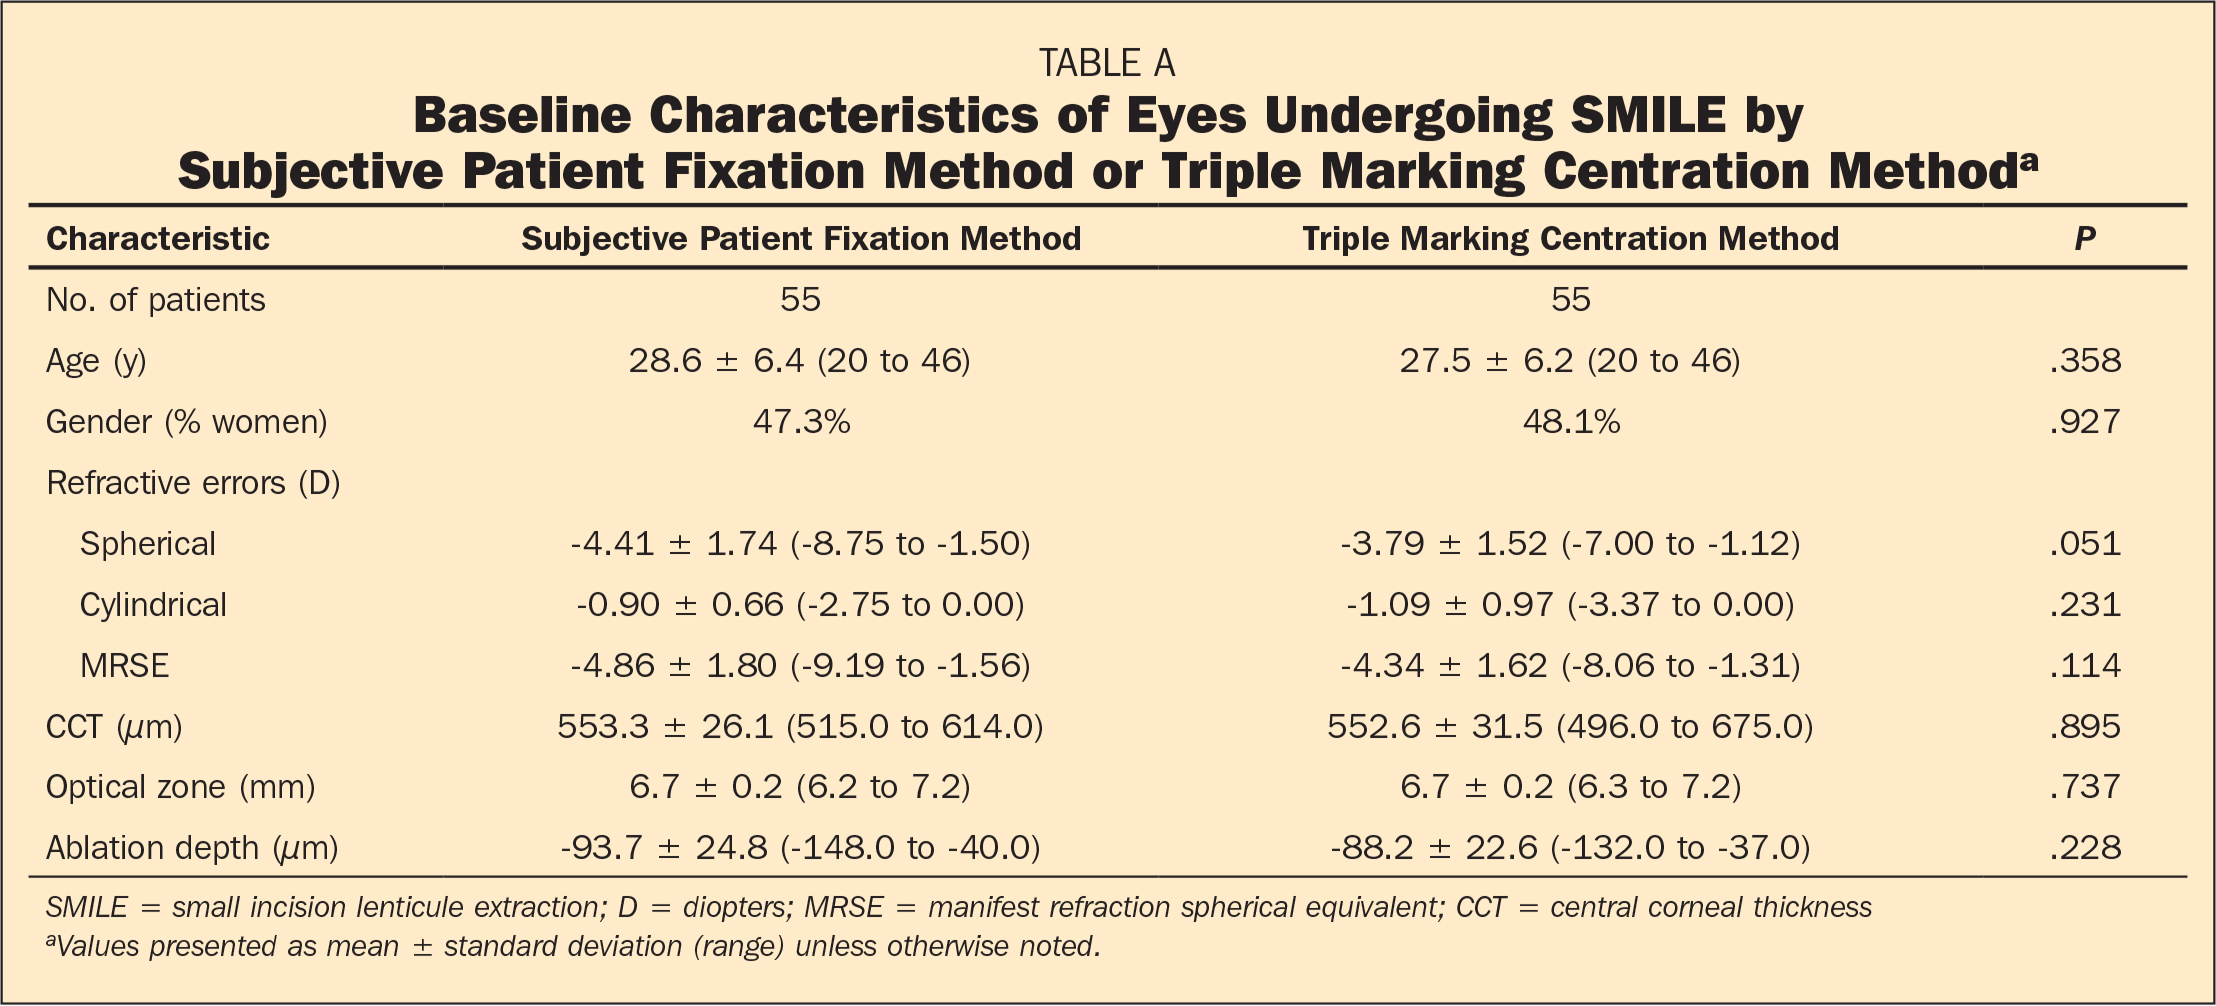 Baseline Characteristics of Eyes Undergoing SMILE by Subjective Patient Fixation Method or Triple Marking Centration Methoda